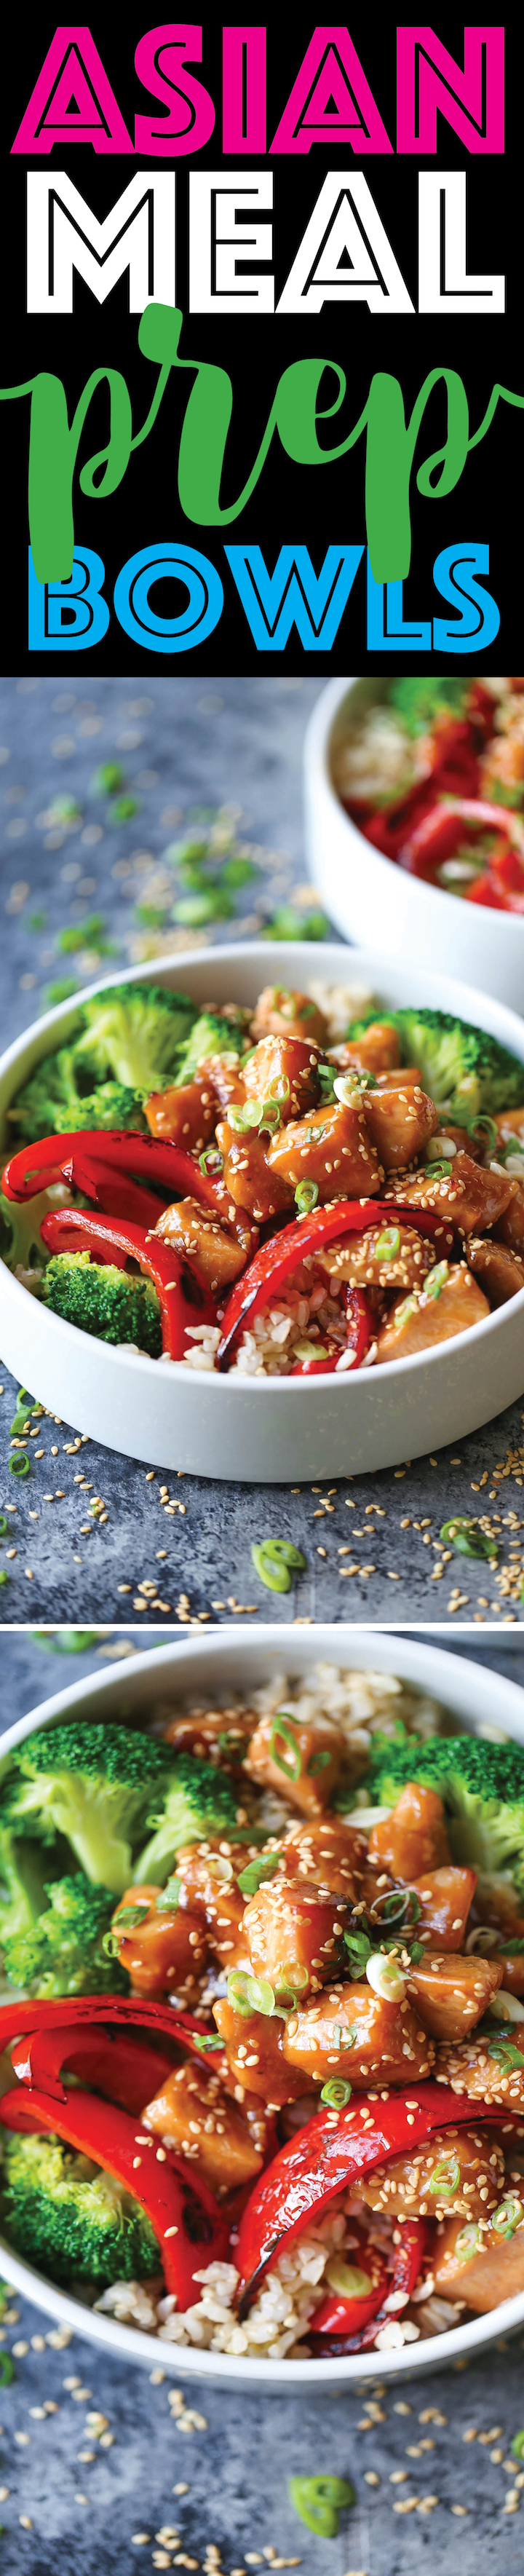 Asian Meal Prep Bowls - Meal prep for the entire week with teriyaki chicken, broccoli, bell pepper and brown rice. The sauce is also completely homemade!